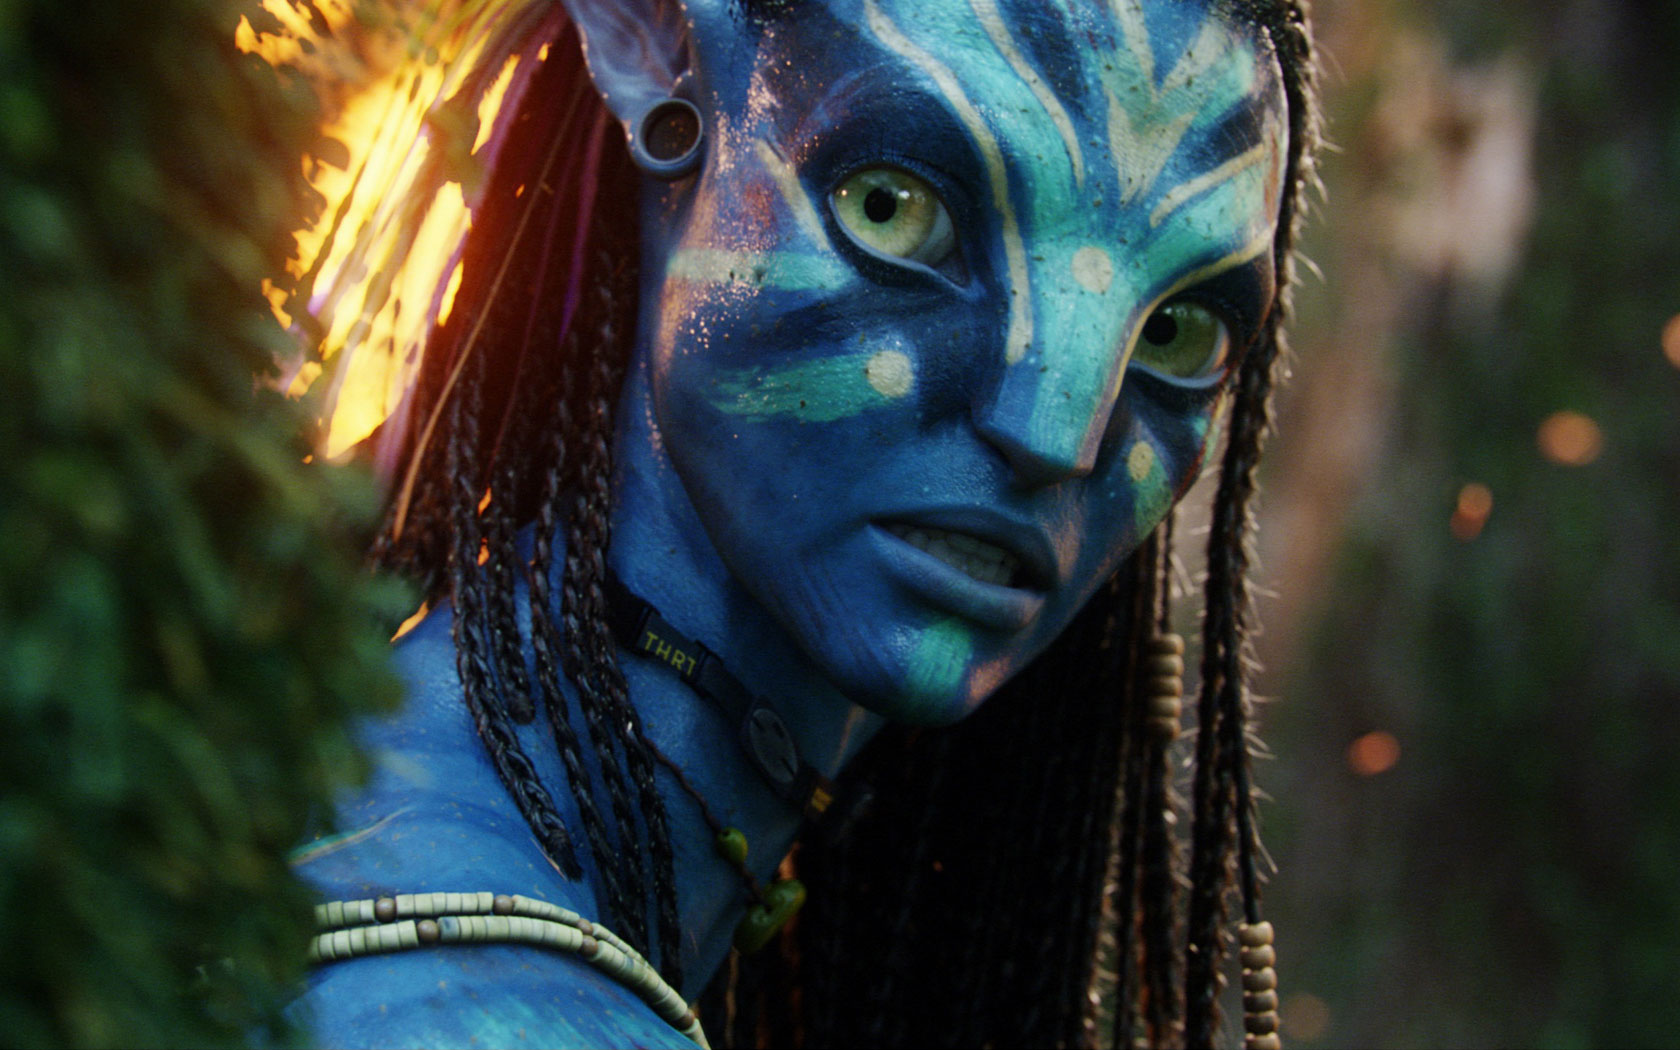 avatar poster images